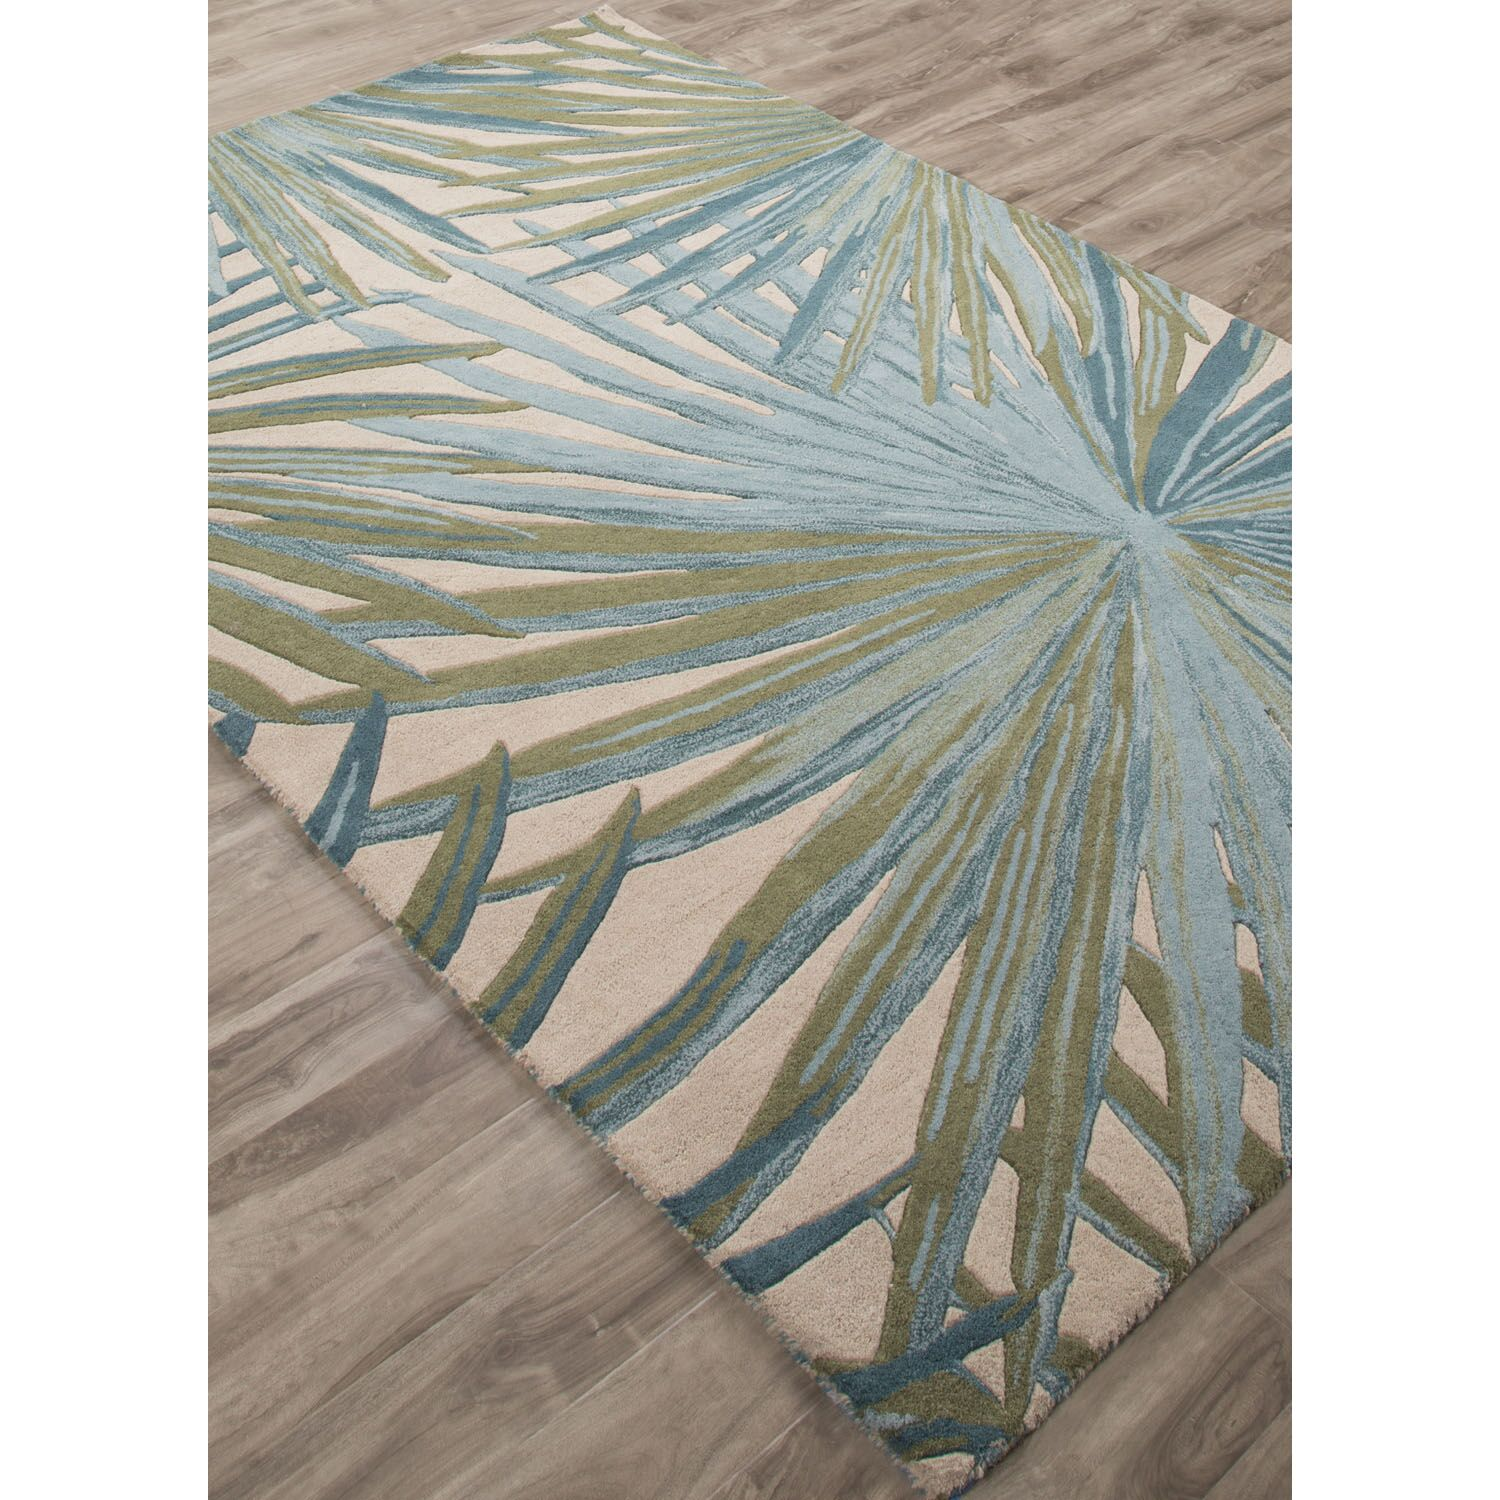 Arsos Hand-Tufted Blue/Green Area Rug Rug Size: Rectangle 8' x 11'